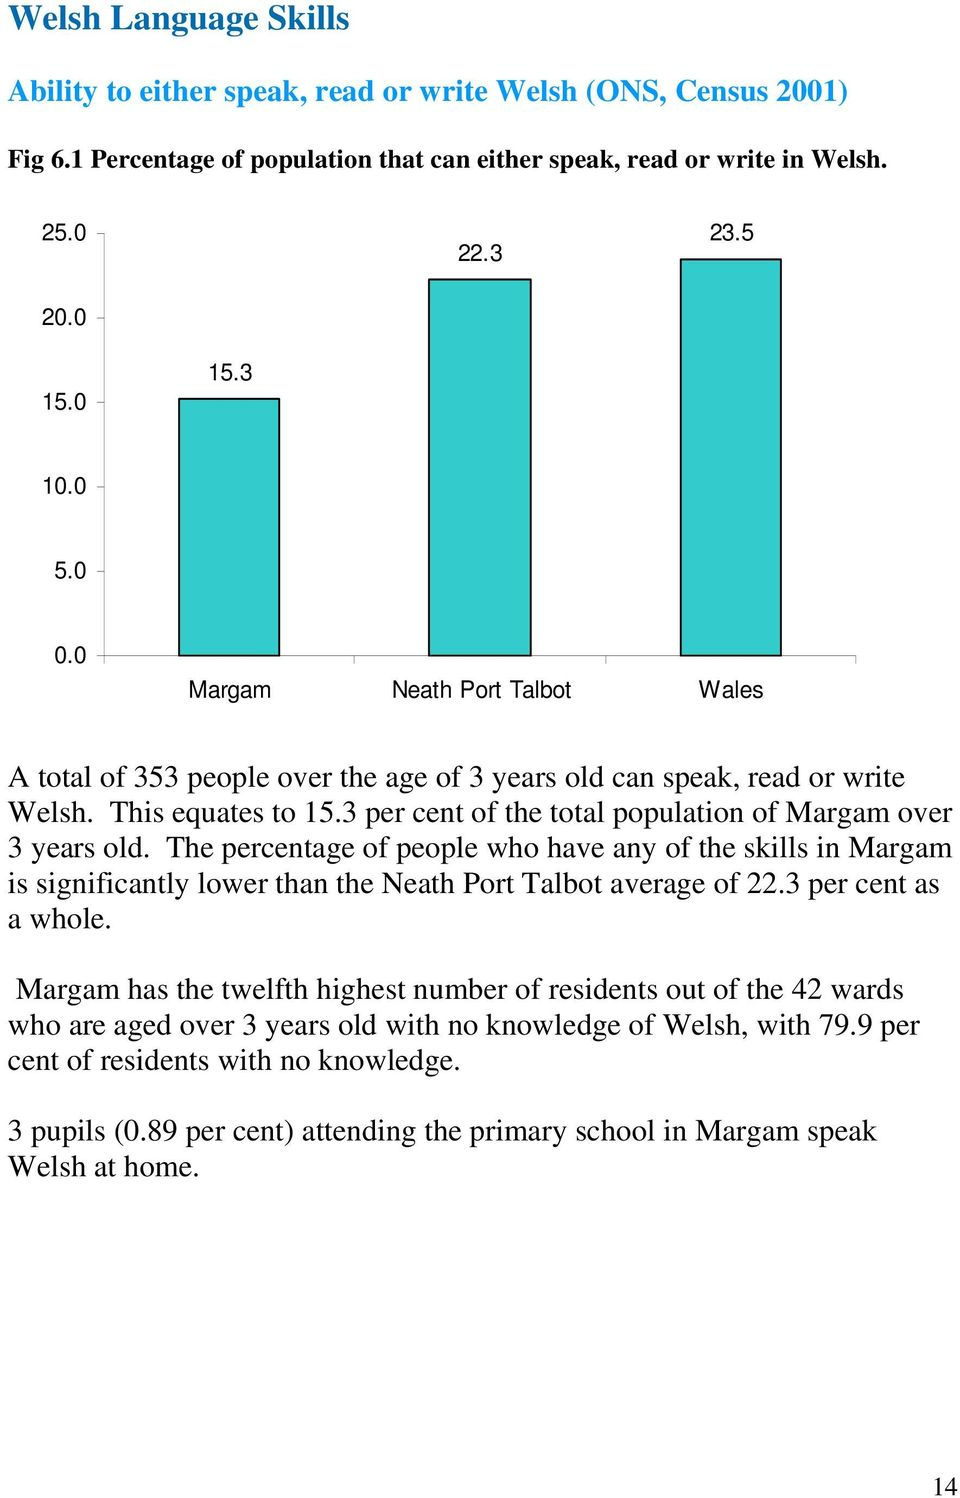 3 per cent of the total population of Margam over 3 years old. The percentage of people who have any of the skills in Margam is significantly lower than the Neath Port Talbot average of 22.